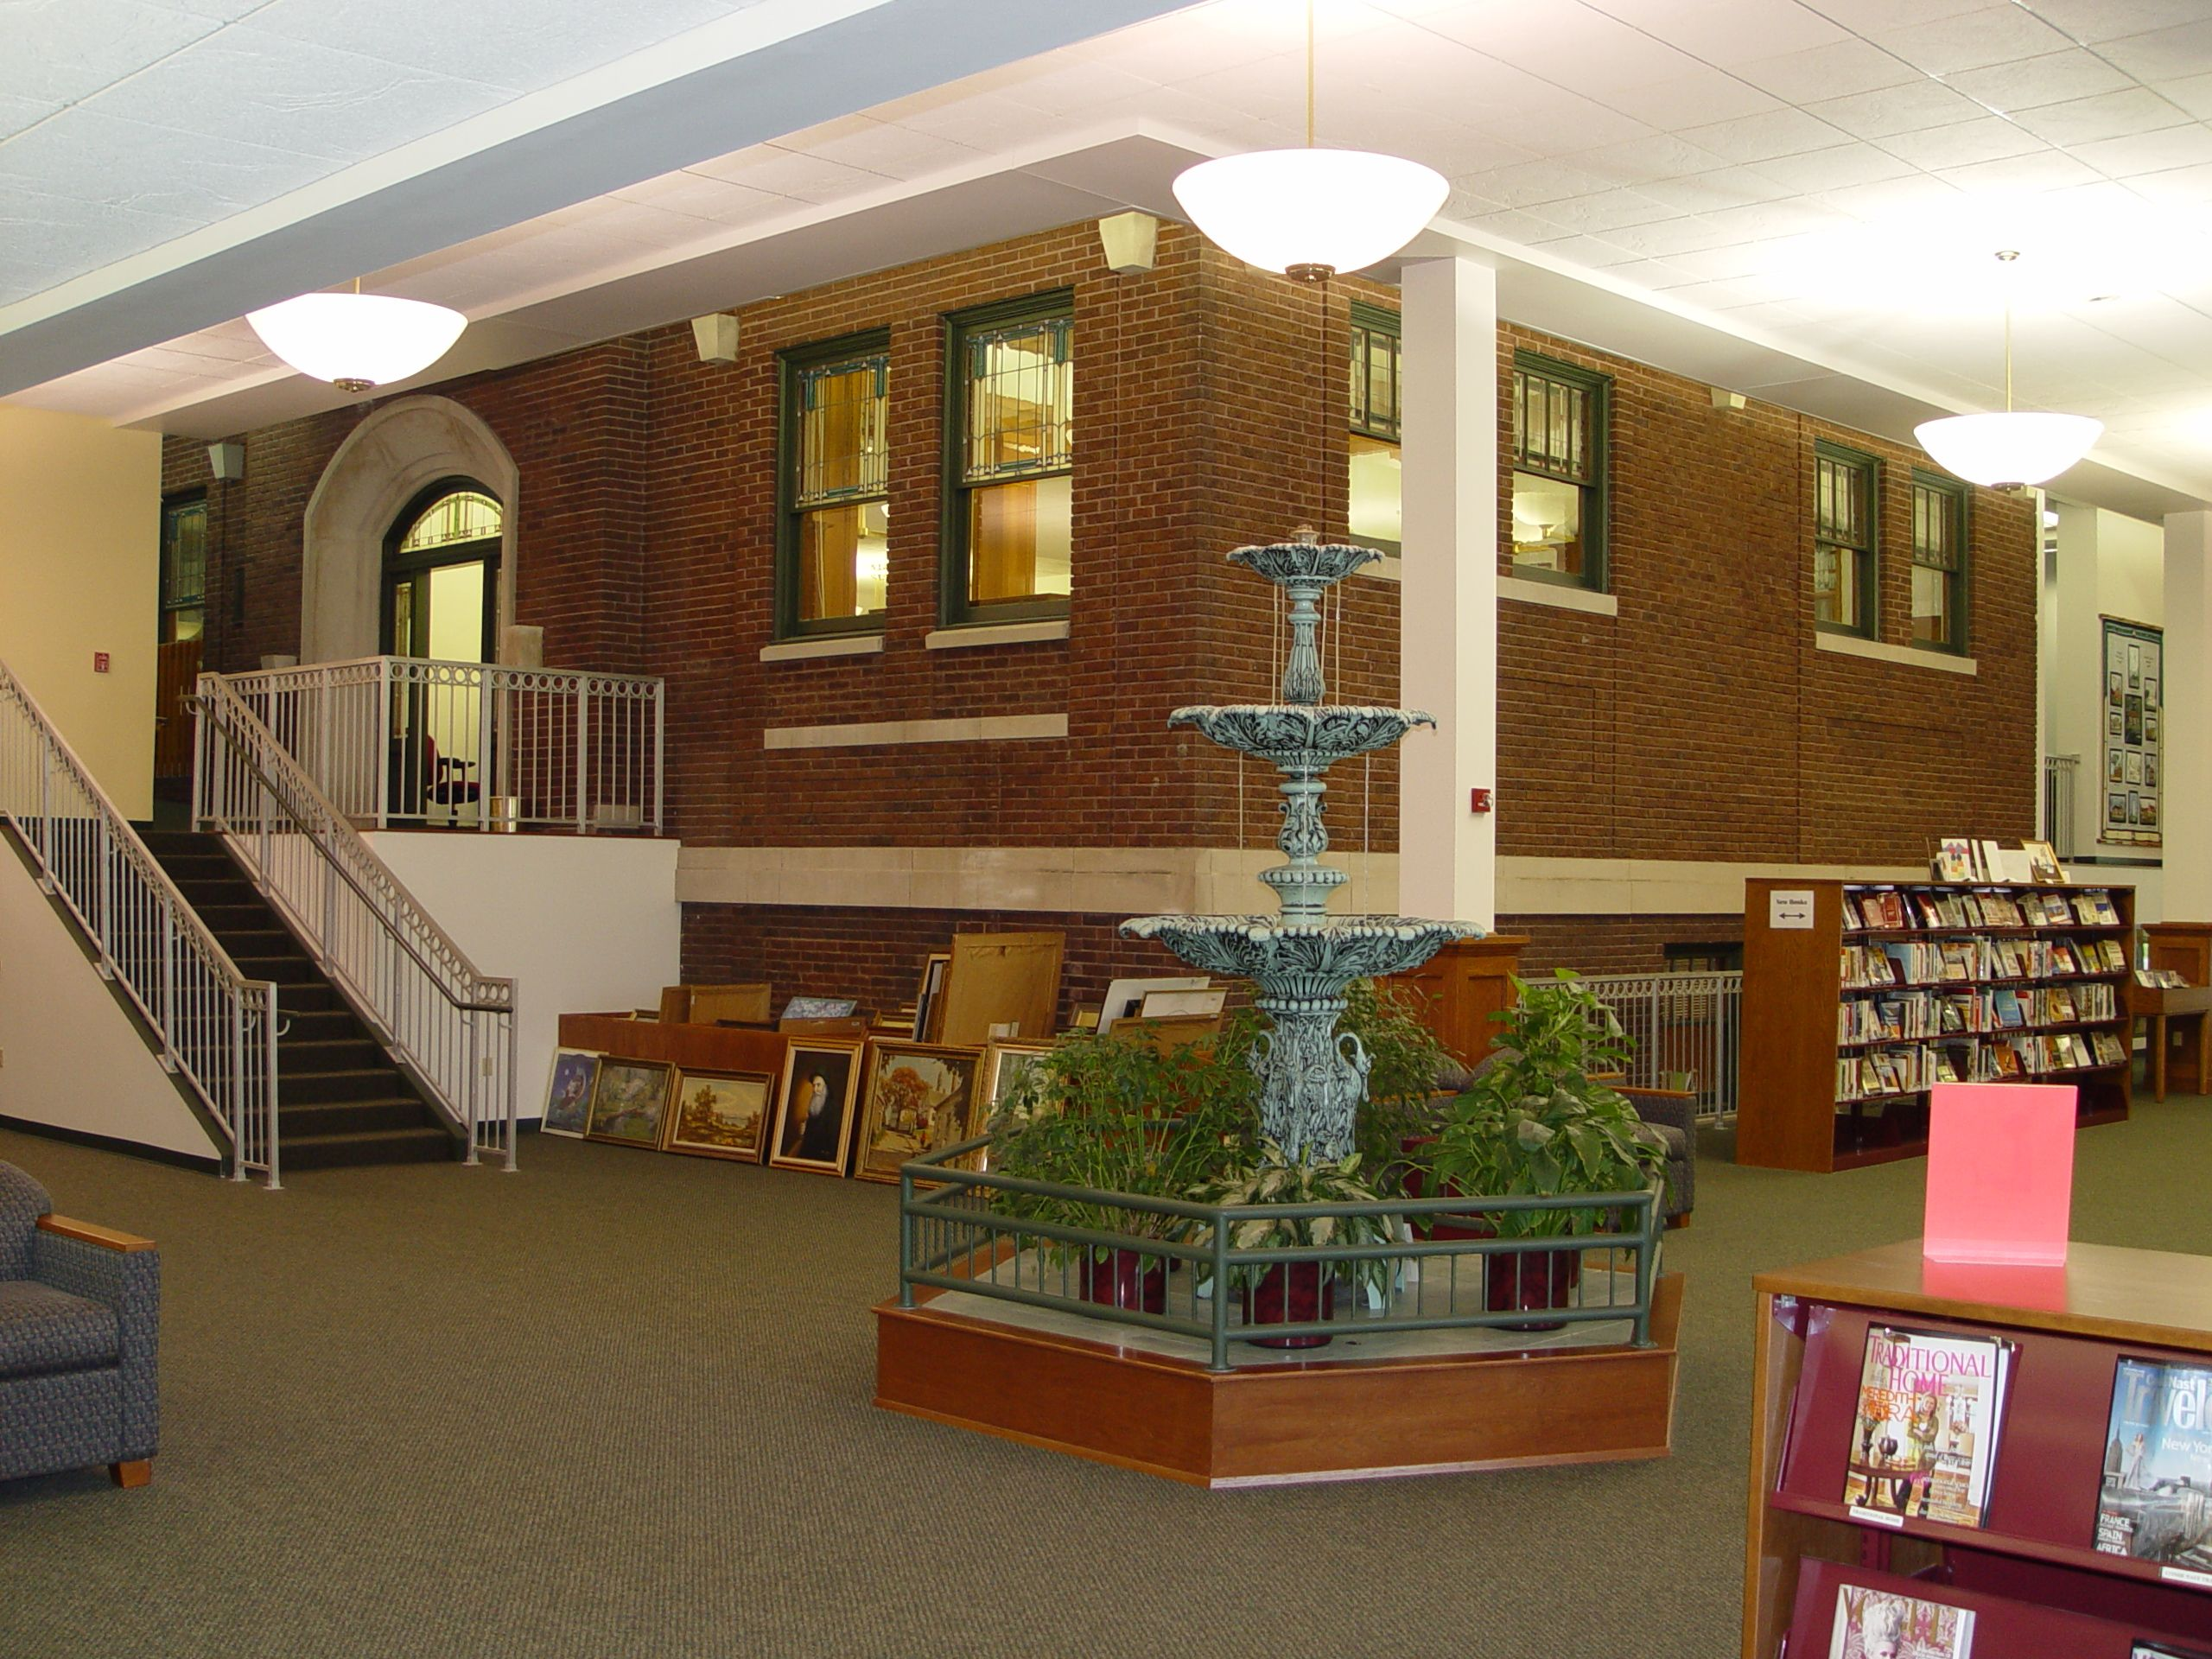 Carnegie Public Library Angola Indiana Renovations Table Decorations Home Decor